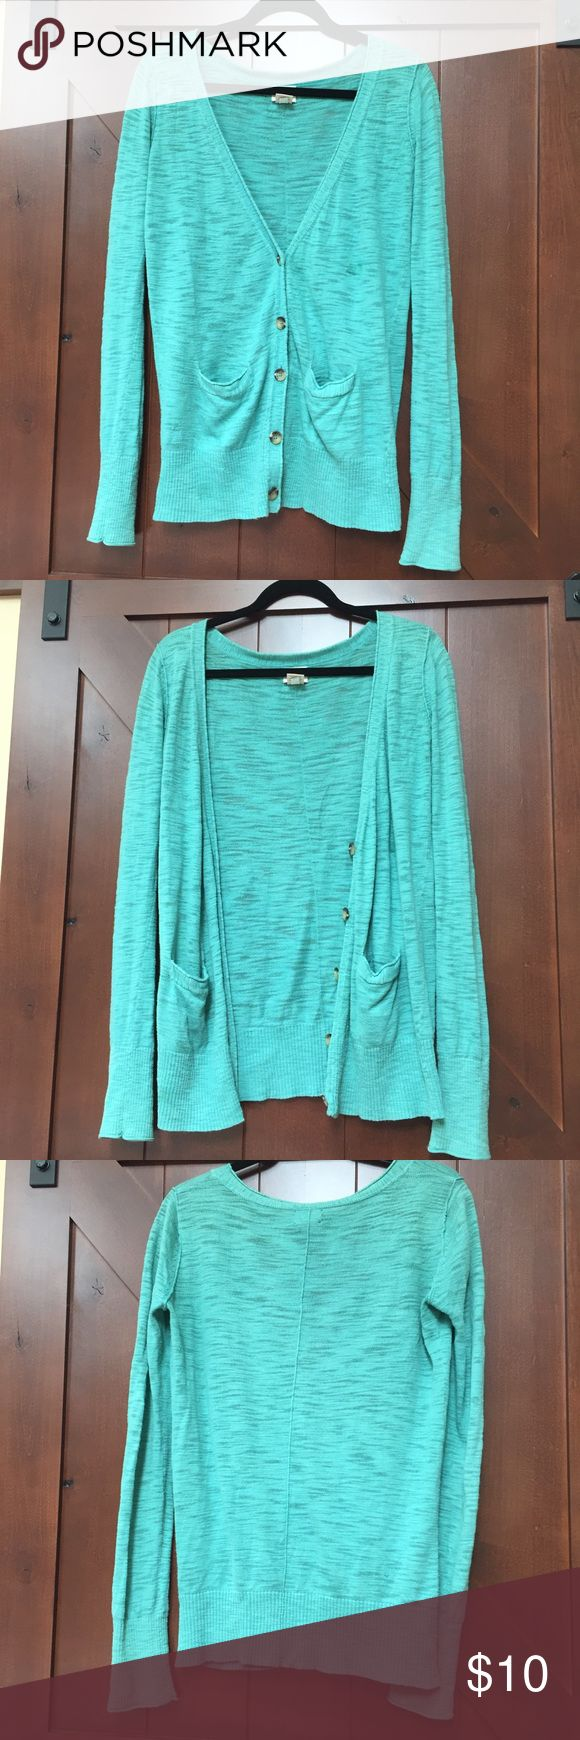 Turquoise Cardigan Turquoise Cardigan from Target.  Long and comfortable.  Has pockets and buttons.  Great condition, 100% cotton.  Size small.  Accepting reasonable offers 💕 Mossimo Supply Co. Sweaters Cardigans